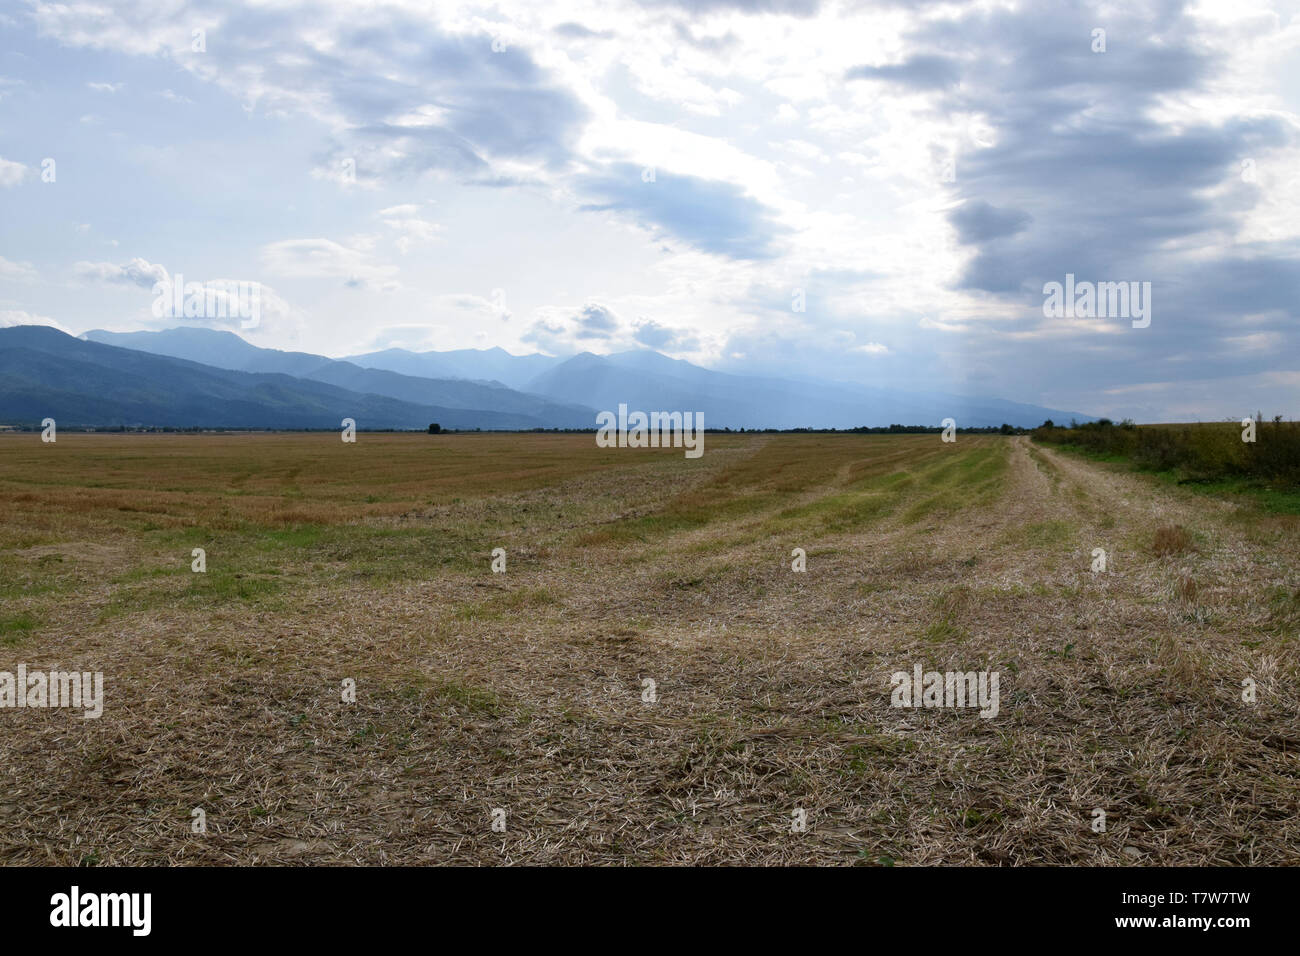 View of the Fagaras mountains from north side. Romania. Stock Photo